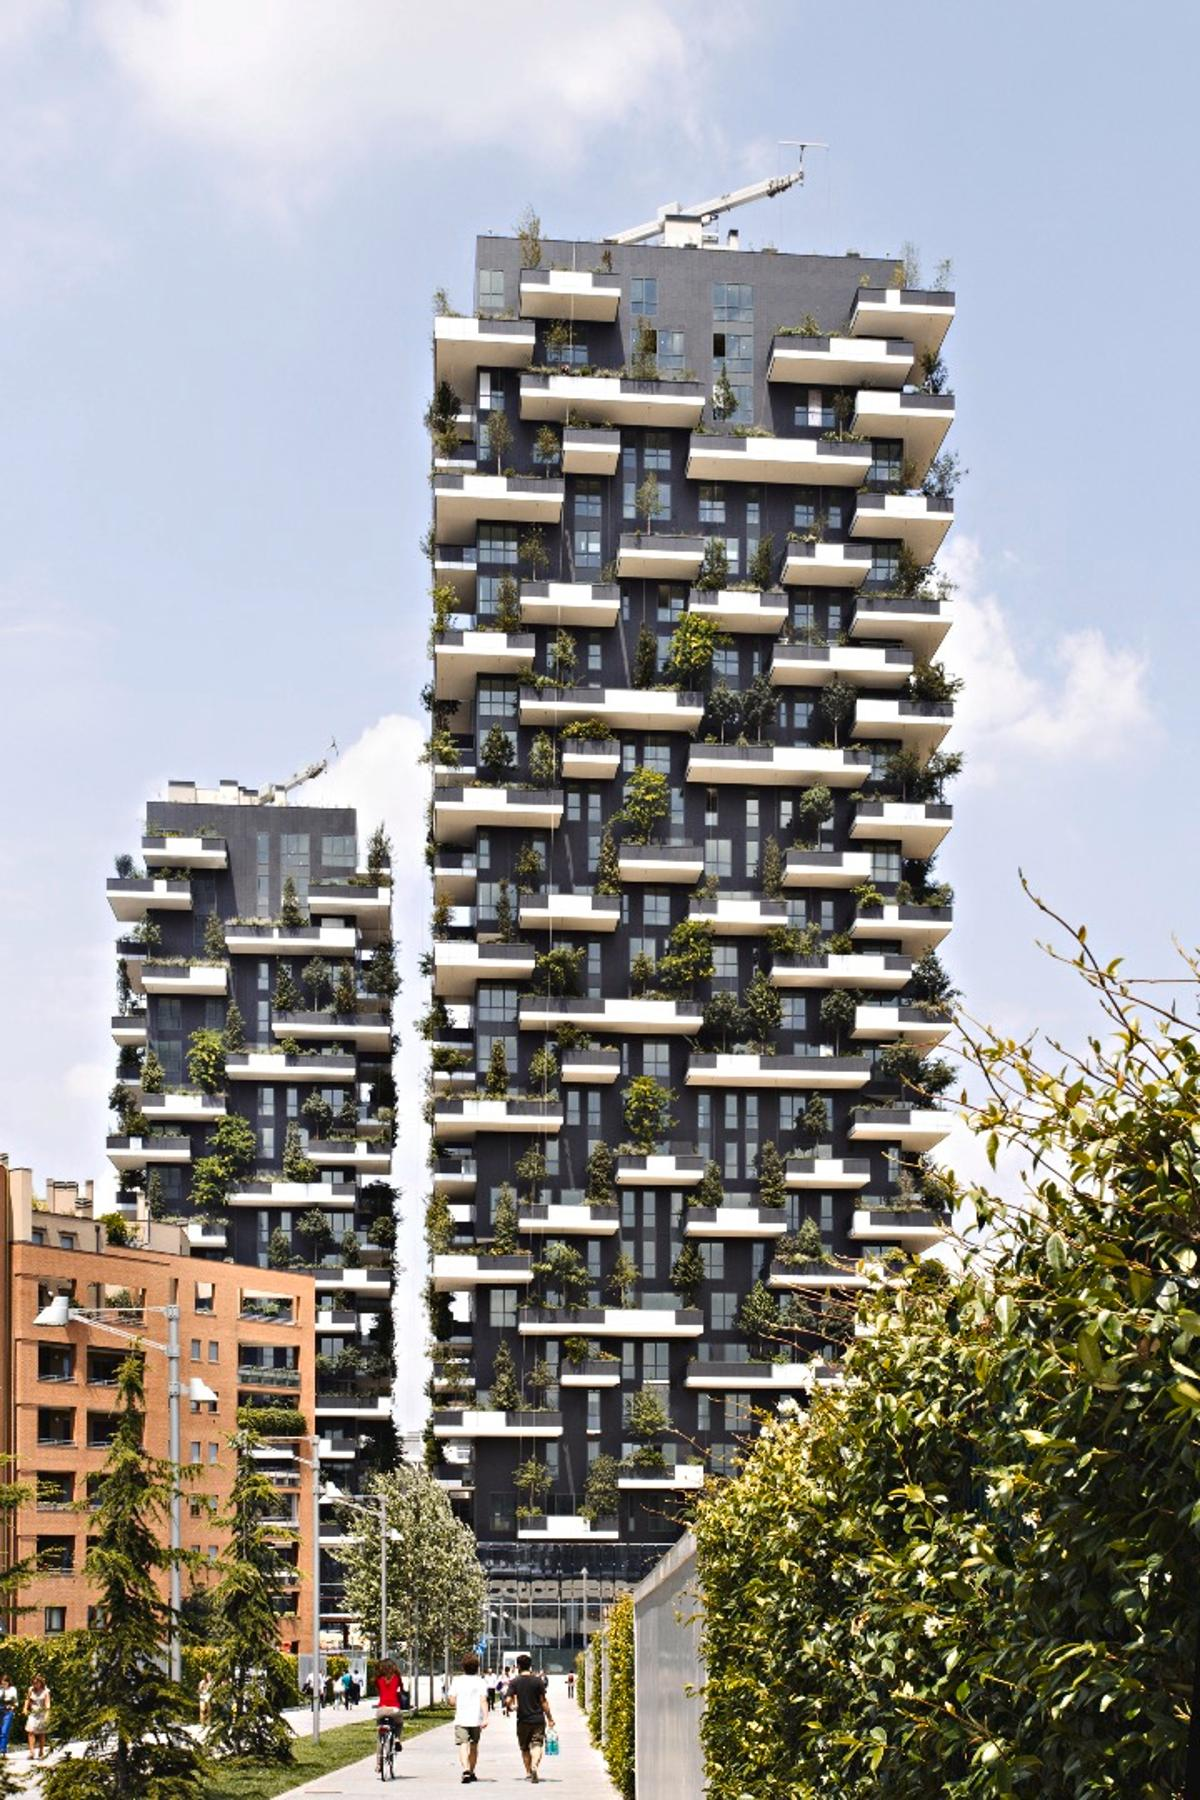 The Milan-based project comprises two greenery-clad residential towers rising to a height of 382 ft (116 m) and 279 ft (85 m), respectively